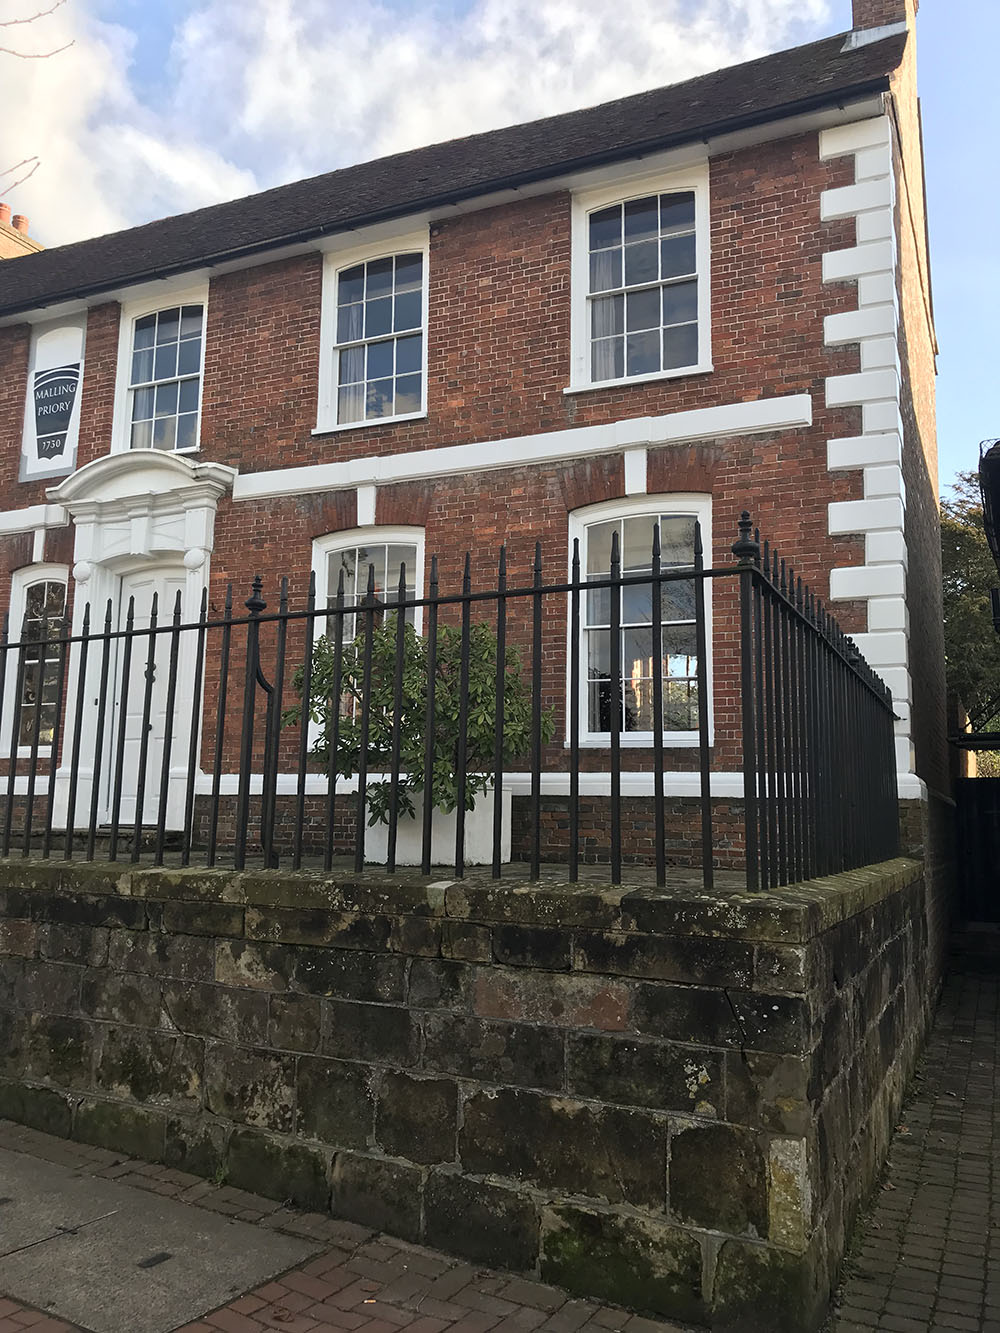 1 - Malling Priory, High Street, Lindfield